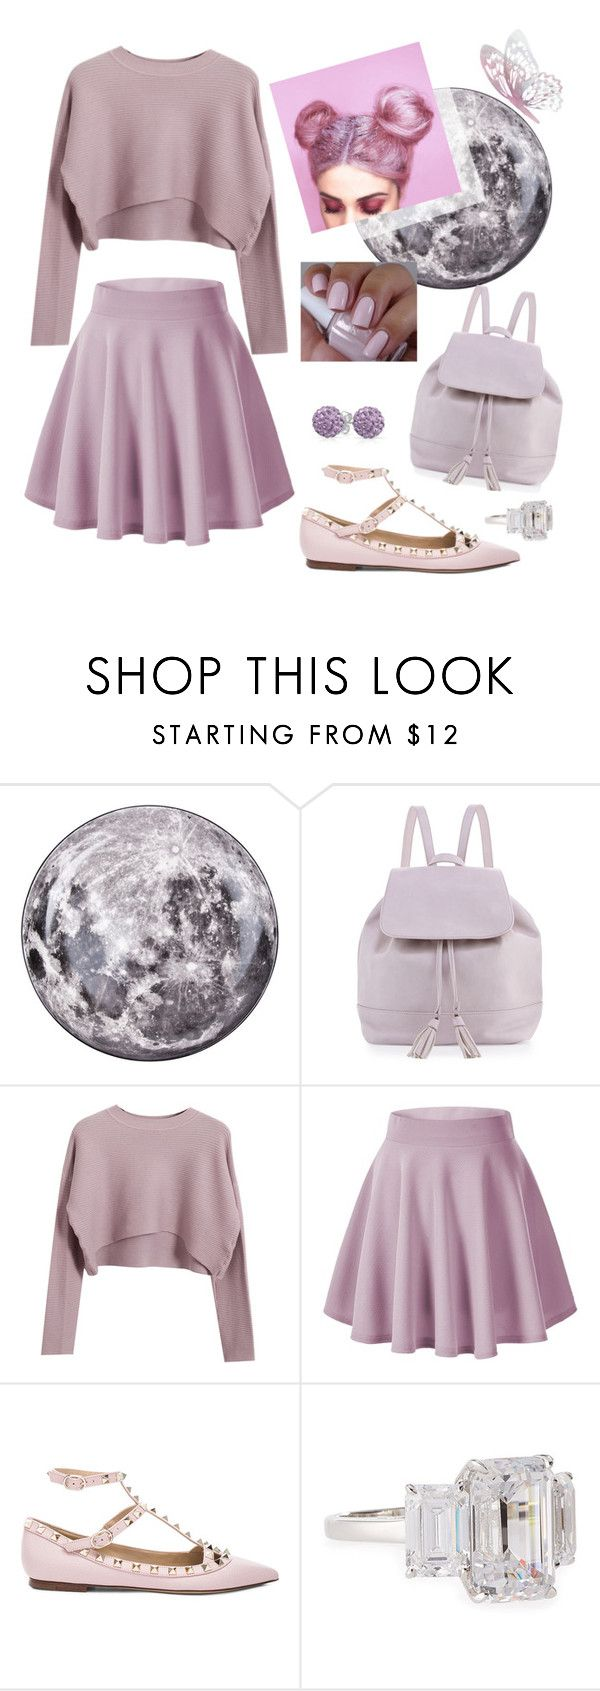 """Back To School ; Lavande"" by mgldemartino ❤ liked on Polyvore featuring Seletti, Neiman Marcus, Chicnova Fashion, Valentino, Fantasia by DeSerio, Bling Jewelry, BackToSchool, valentino and lavande"